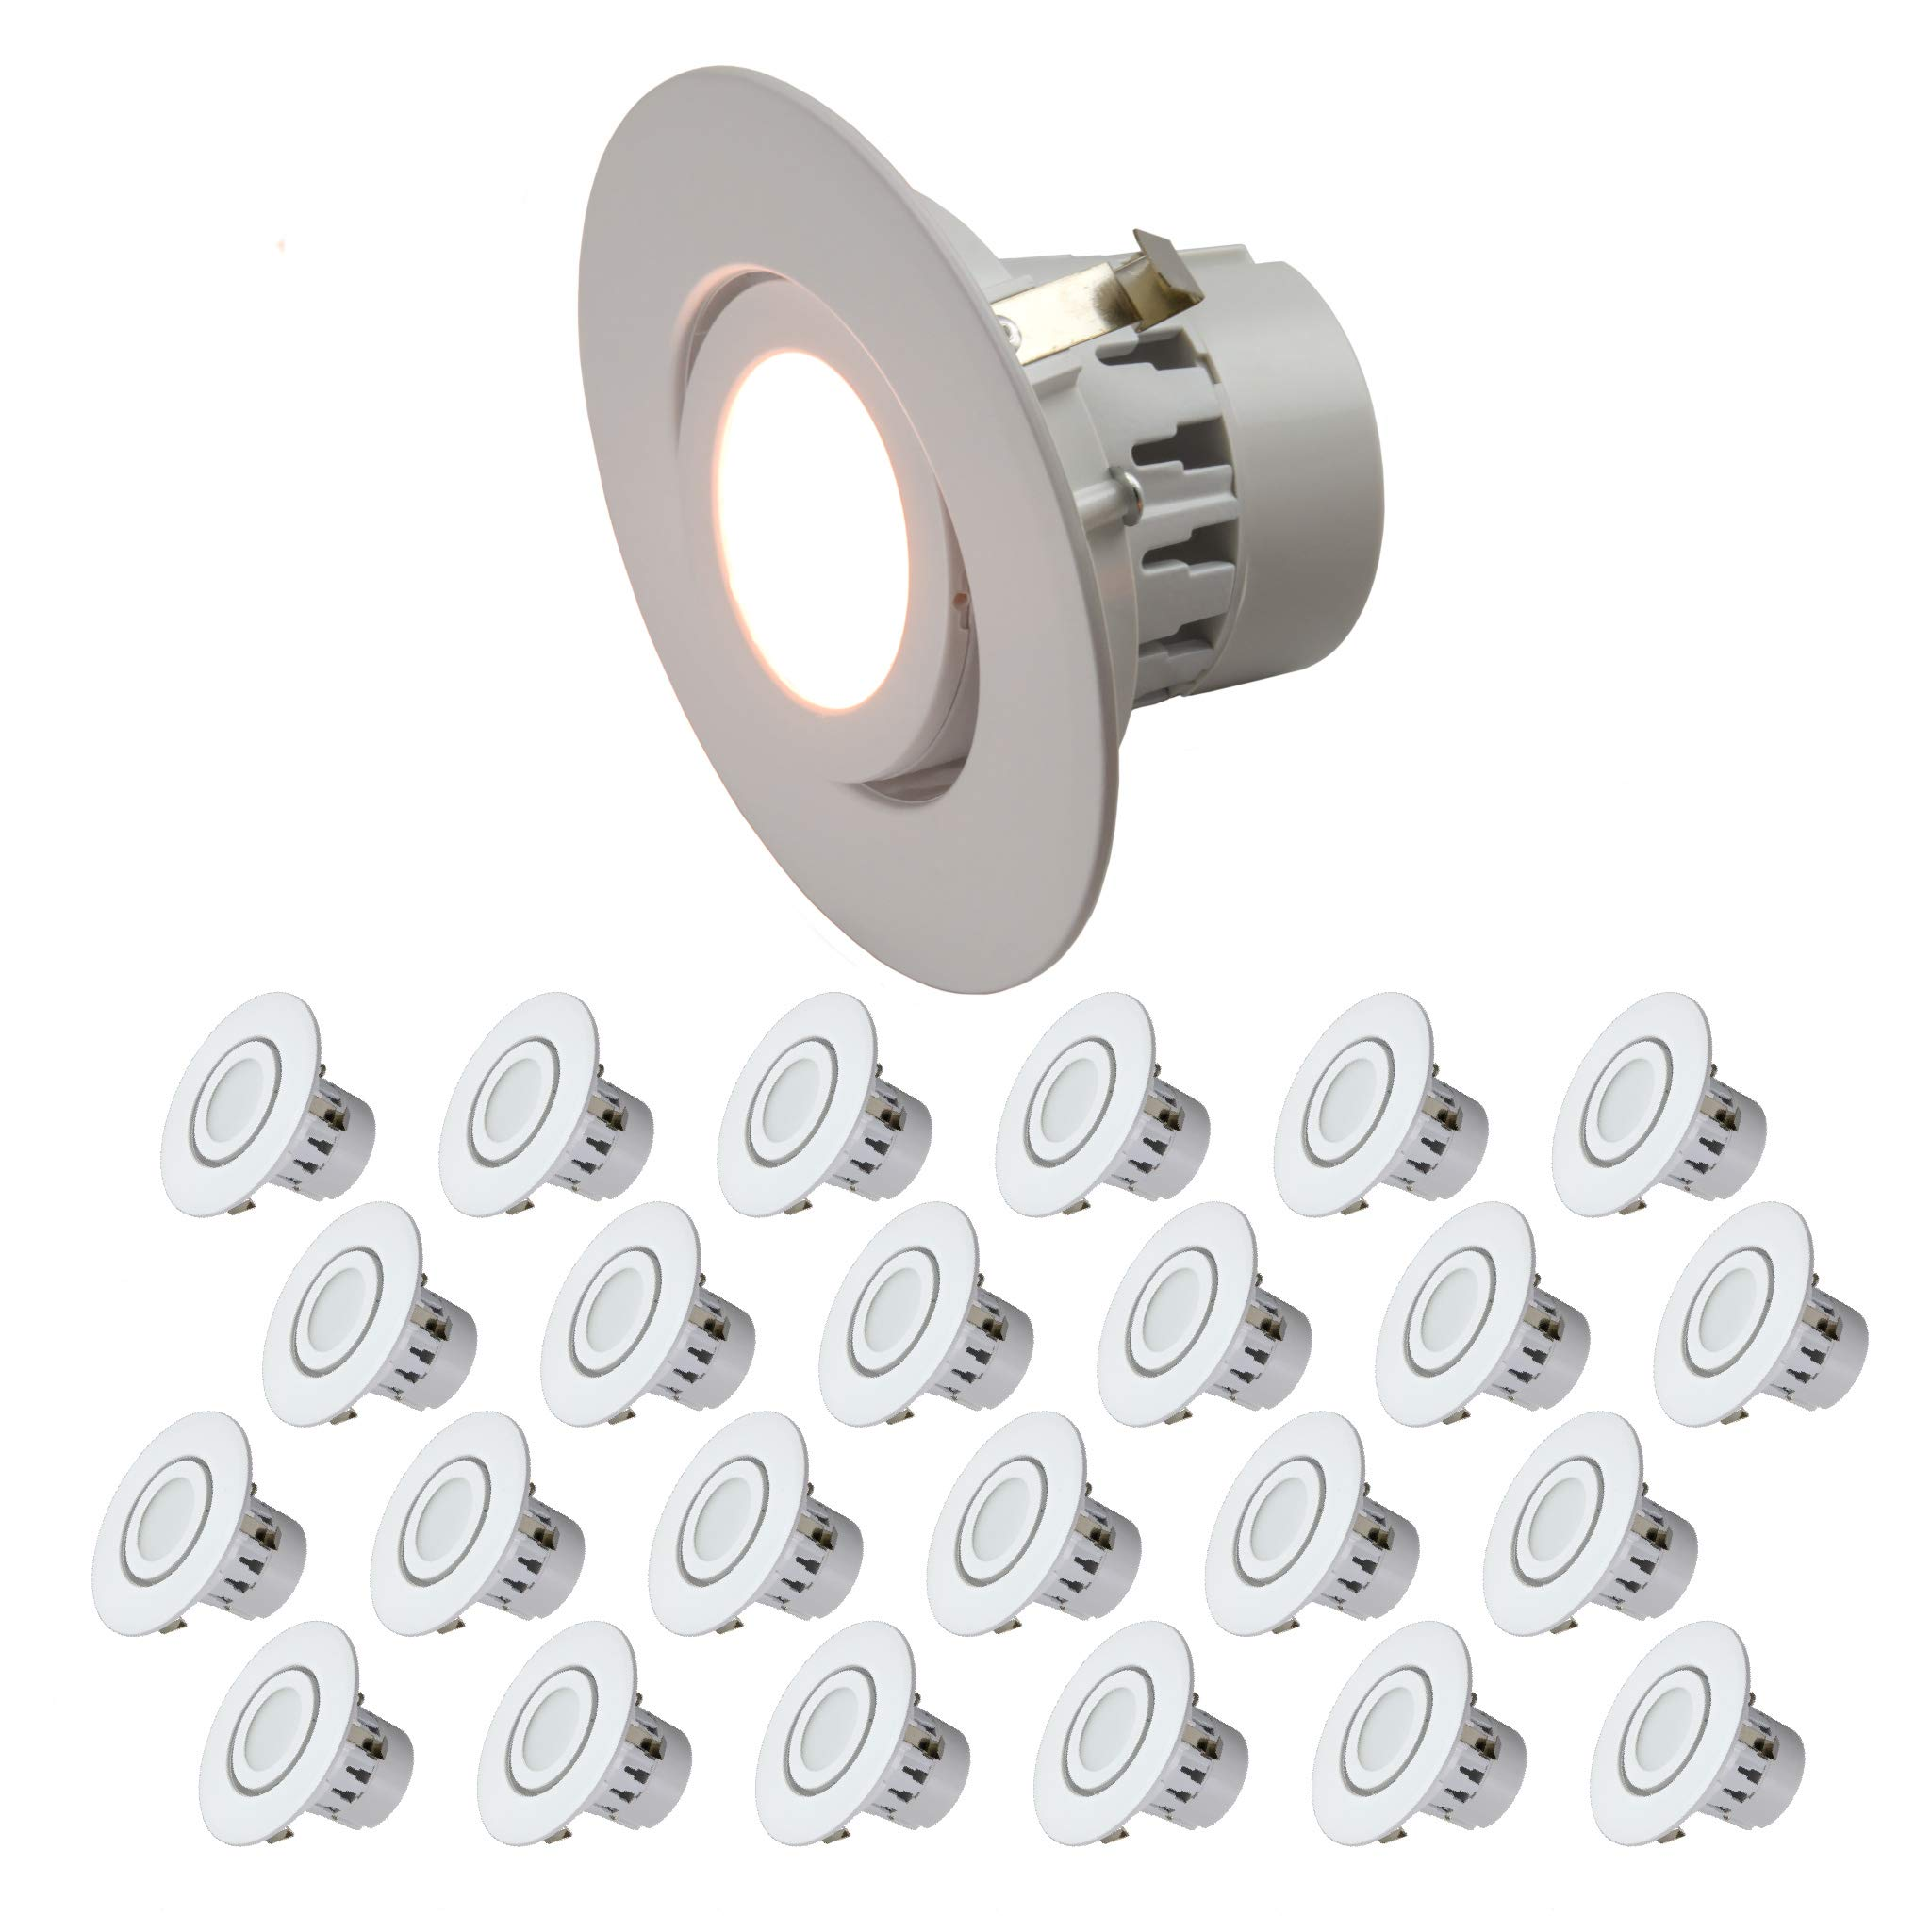 4'' Inch LED Gimbal Adjustable Rotating Downlight 10W= (75w Equivalent) Wet Loaction Rated; 25,000 Life Hours; Dimmable; 5 YR Warranty; Warm White 2700K- (24 Pack)